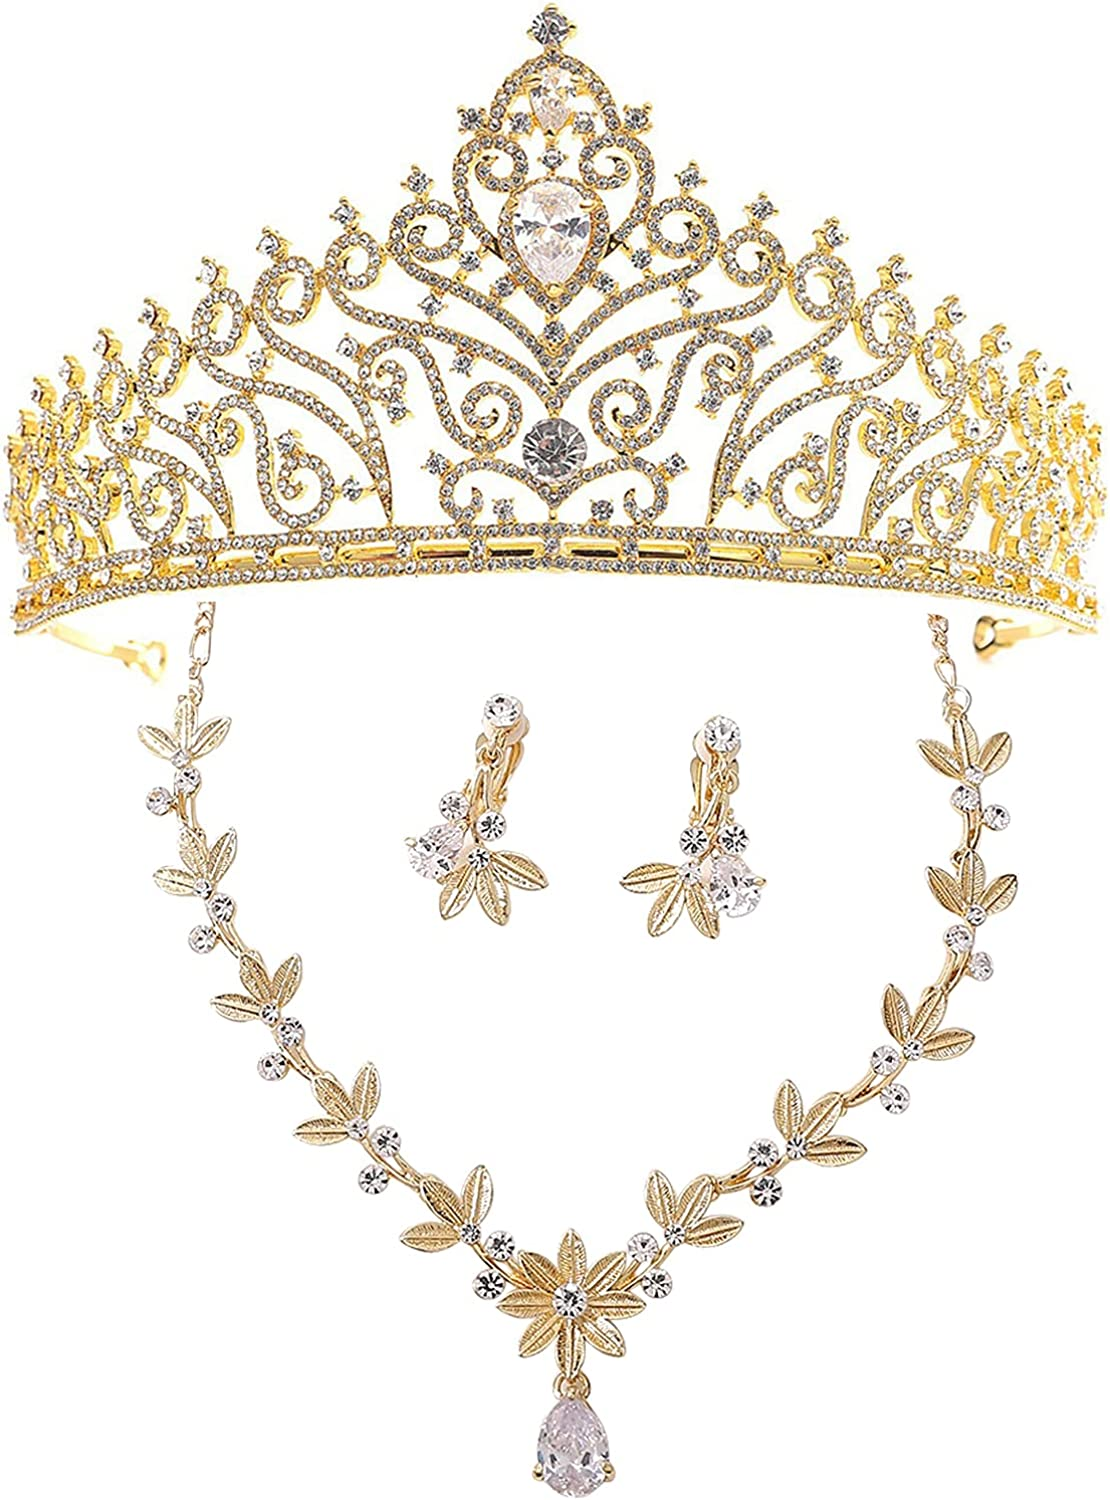 Baroque Fashion Jewelry Bridal Dress Accessories Crown Necklace Earrings White Rhinestones Handmade Craft Inlay Gifts